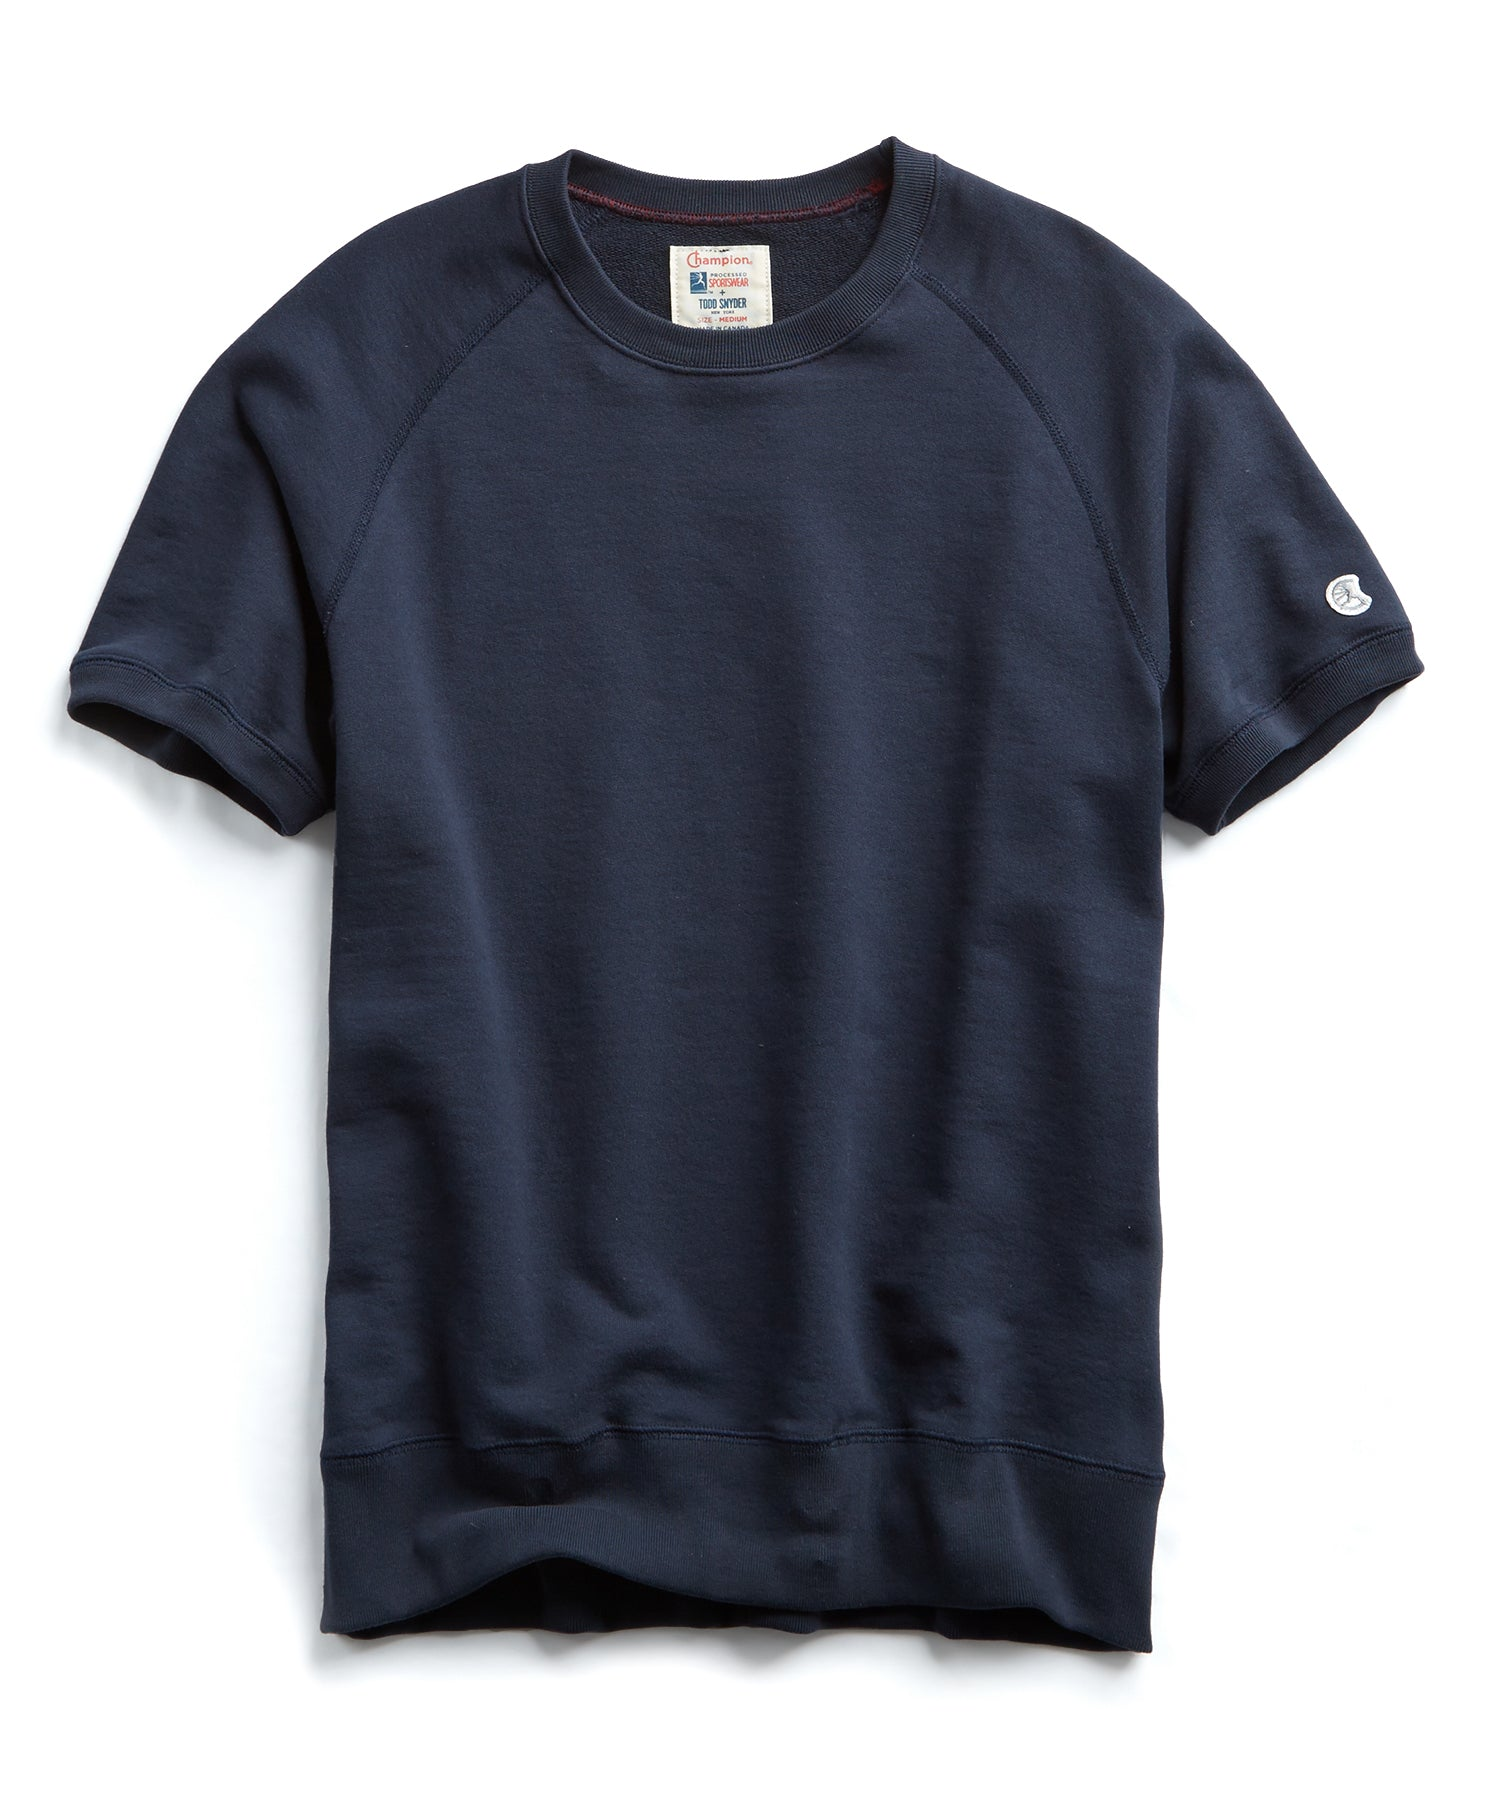 Terry Short Sleeve Sweatshirt in Navy